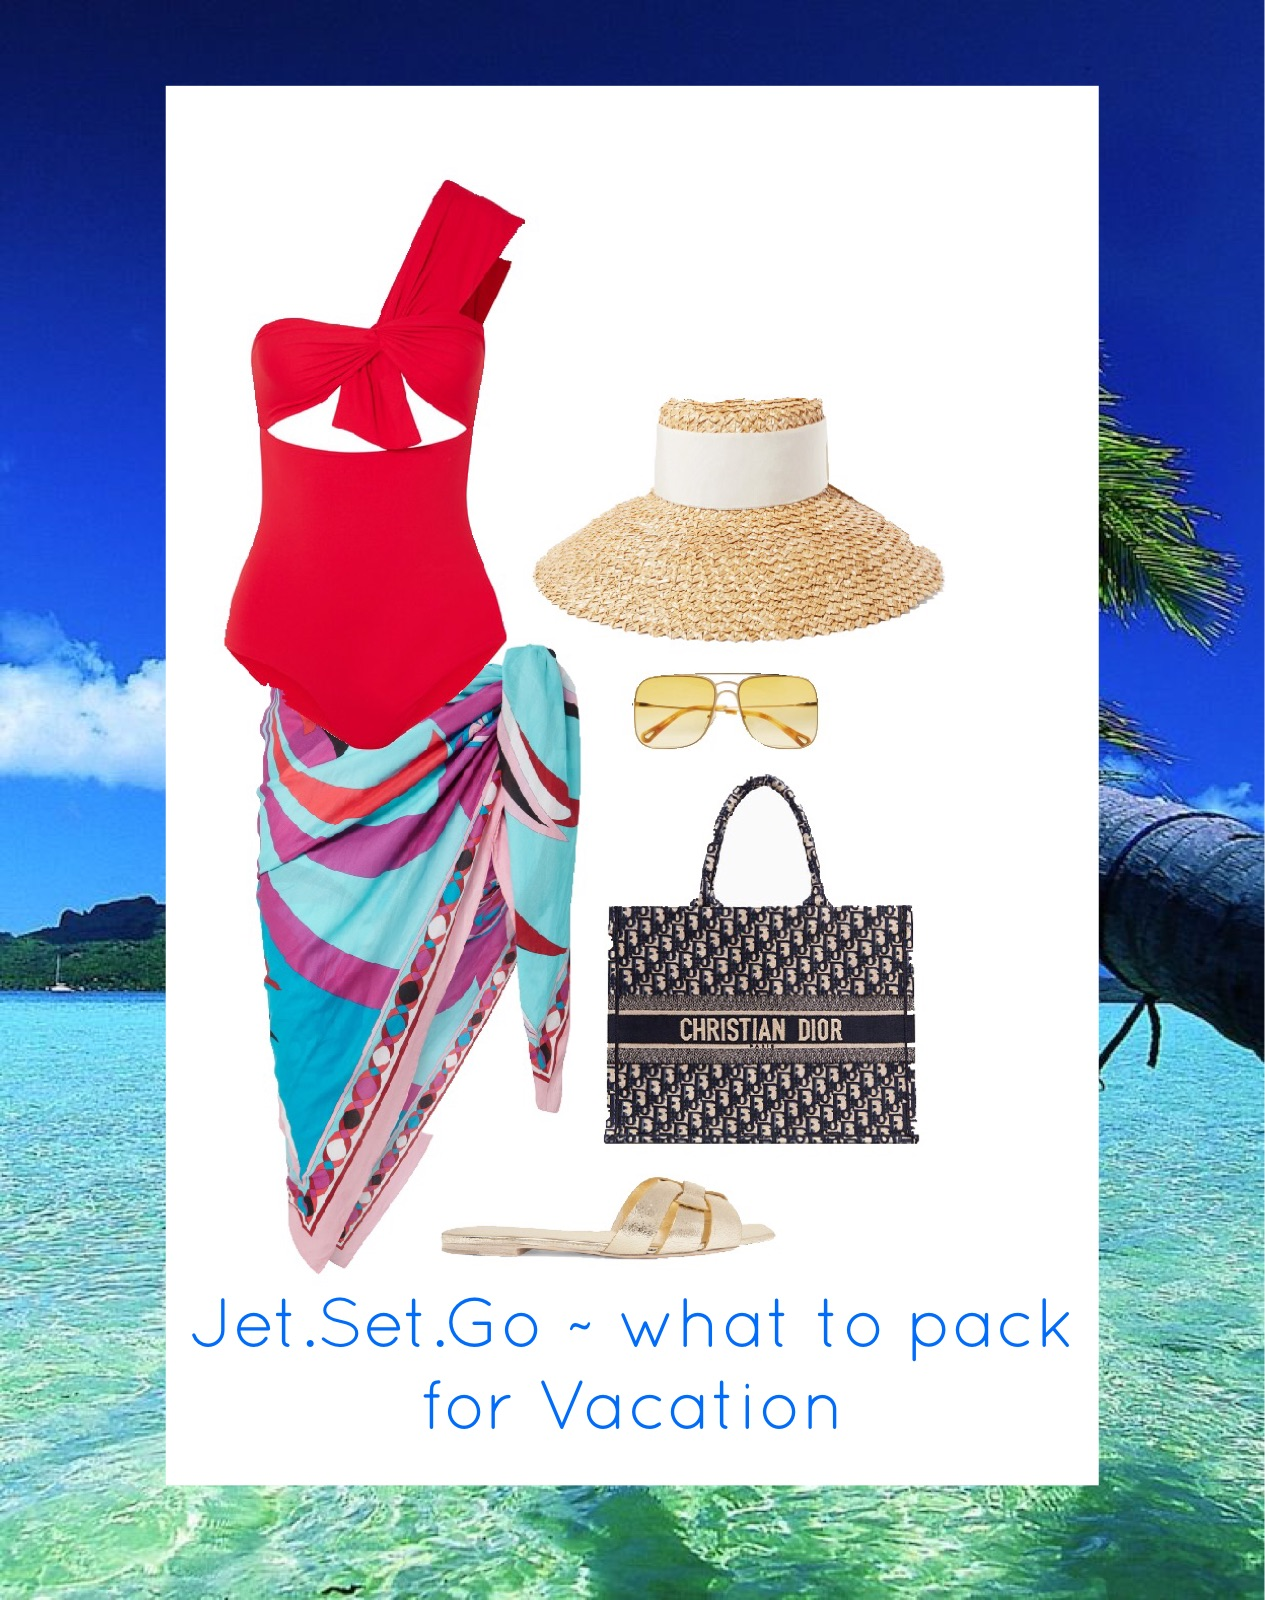 VACATION READY? HERE'S WHAT TO PACK